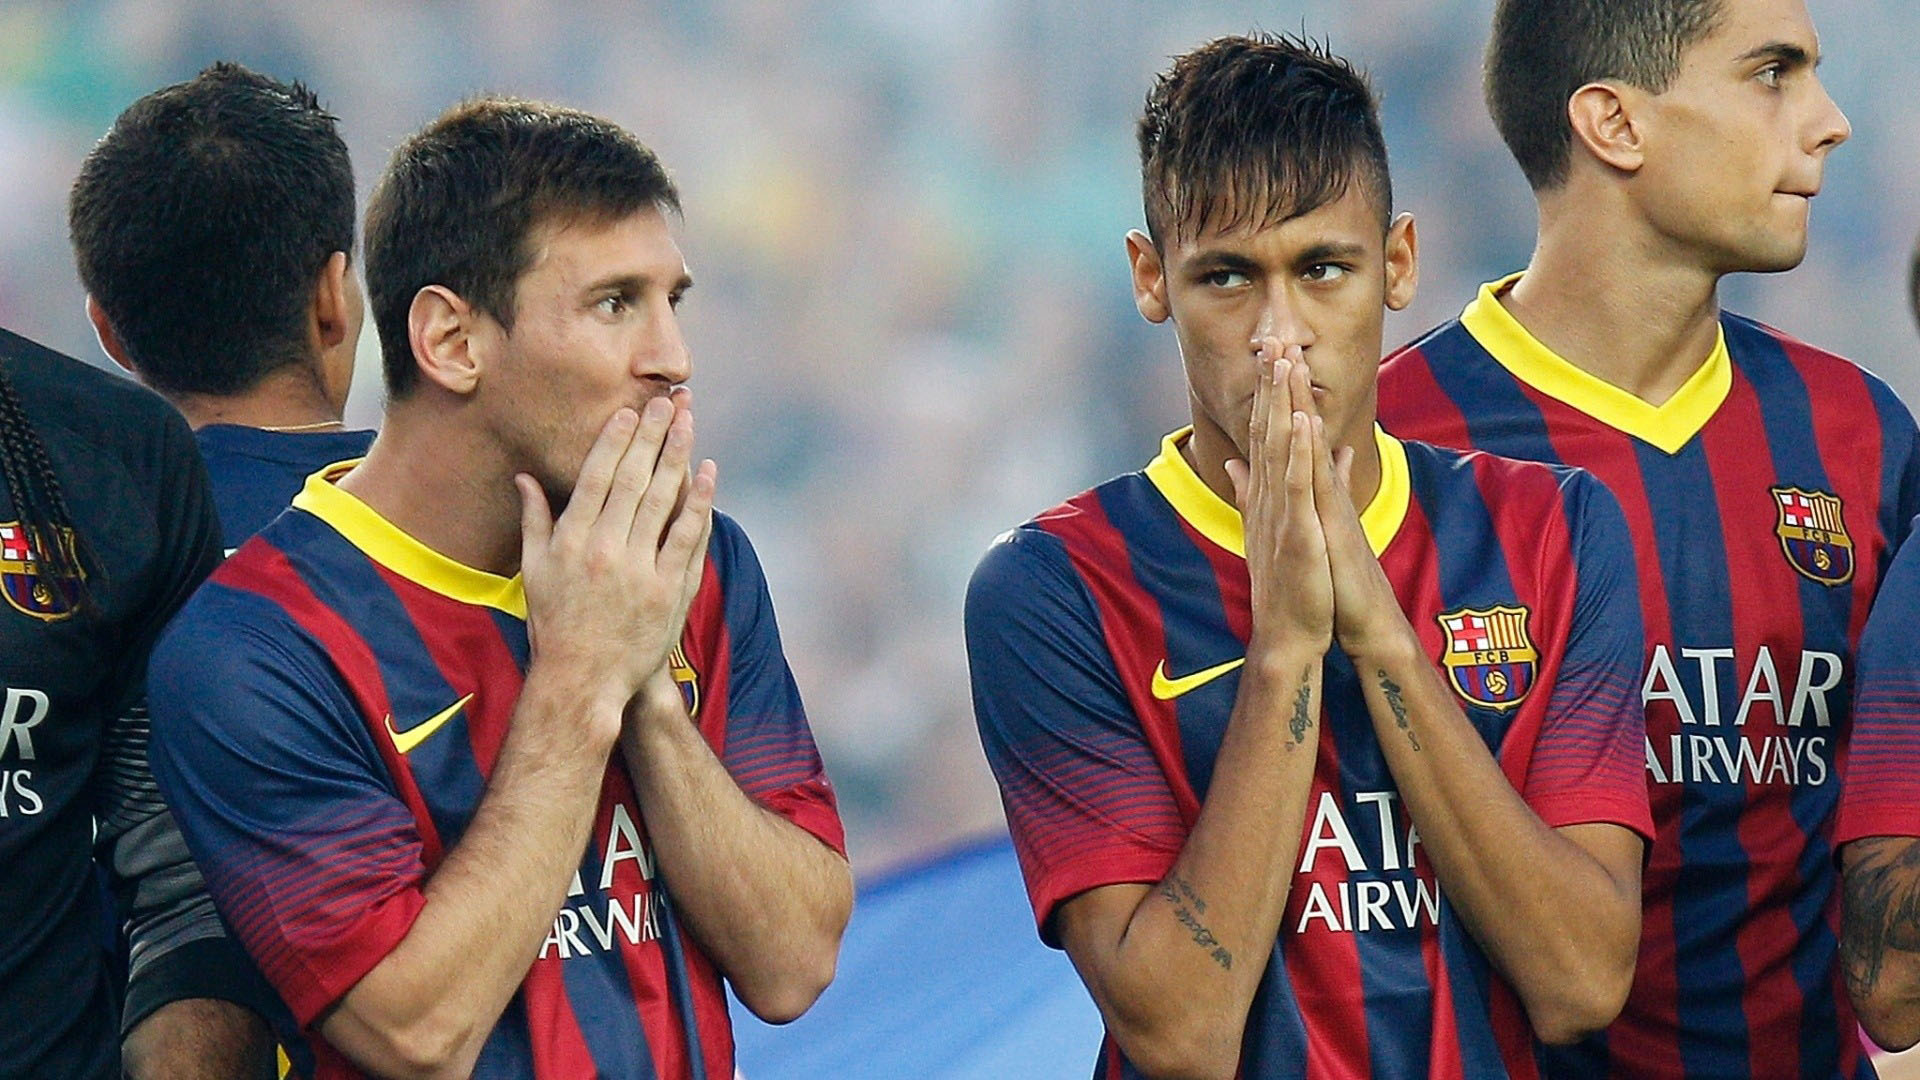 Messi and Neymar nervous during a Barcelona media photoshoot